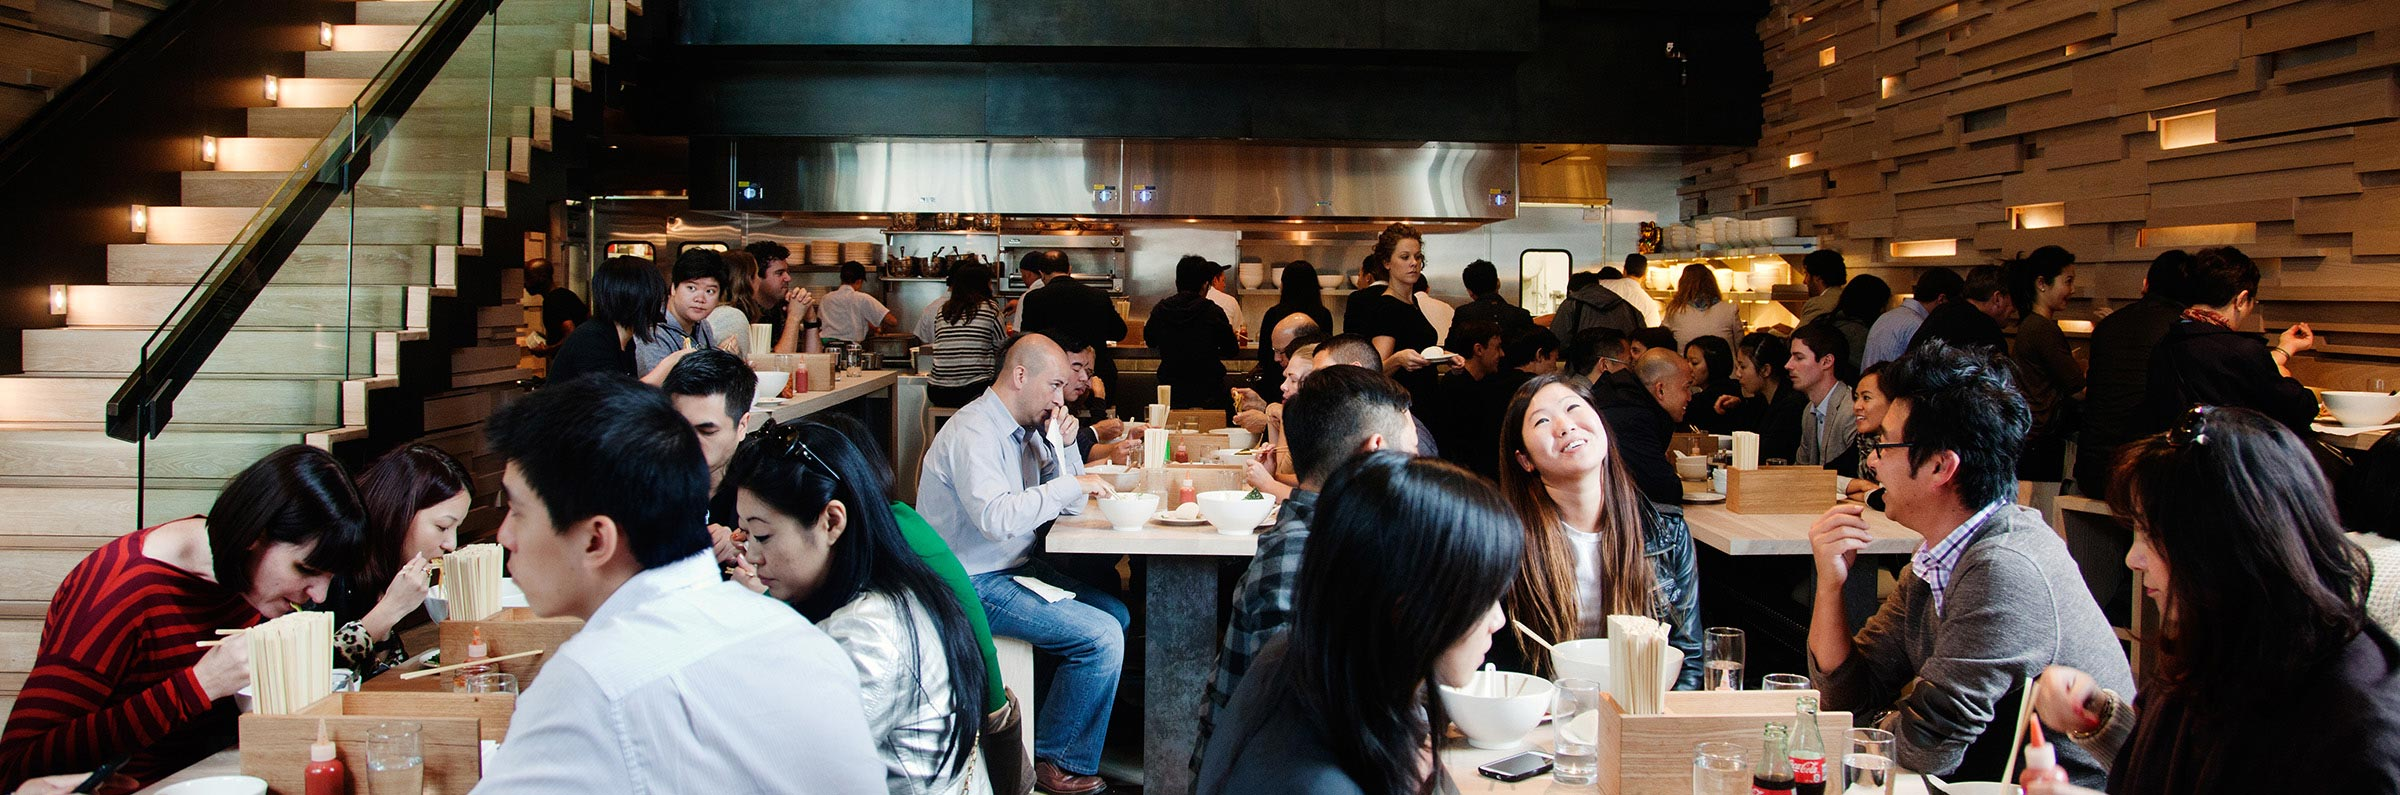 Food and drink in Toronto